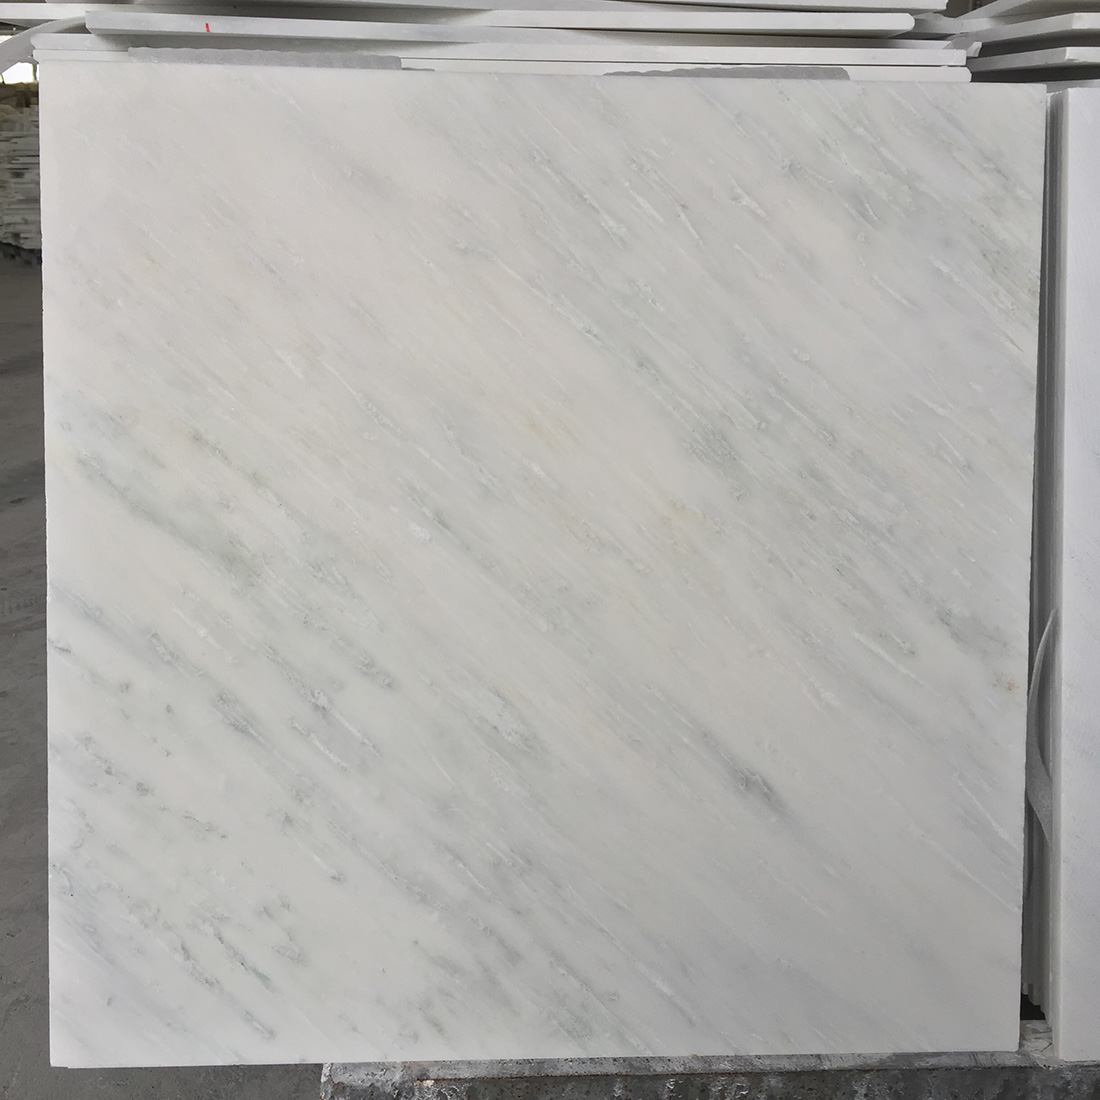 Honed White Marble Tiles 24*24 inches